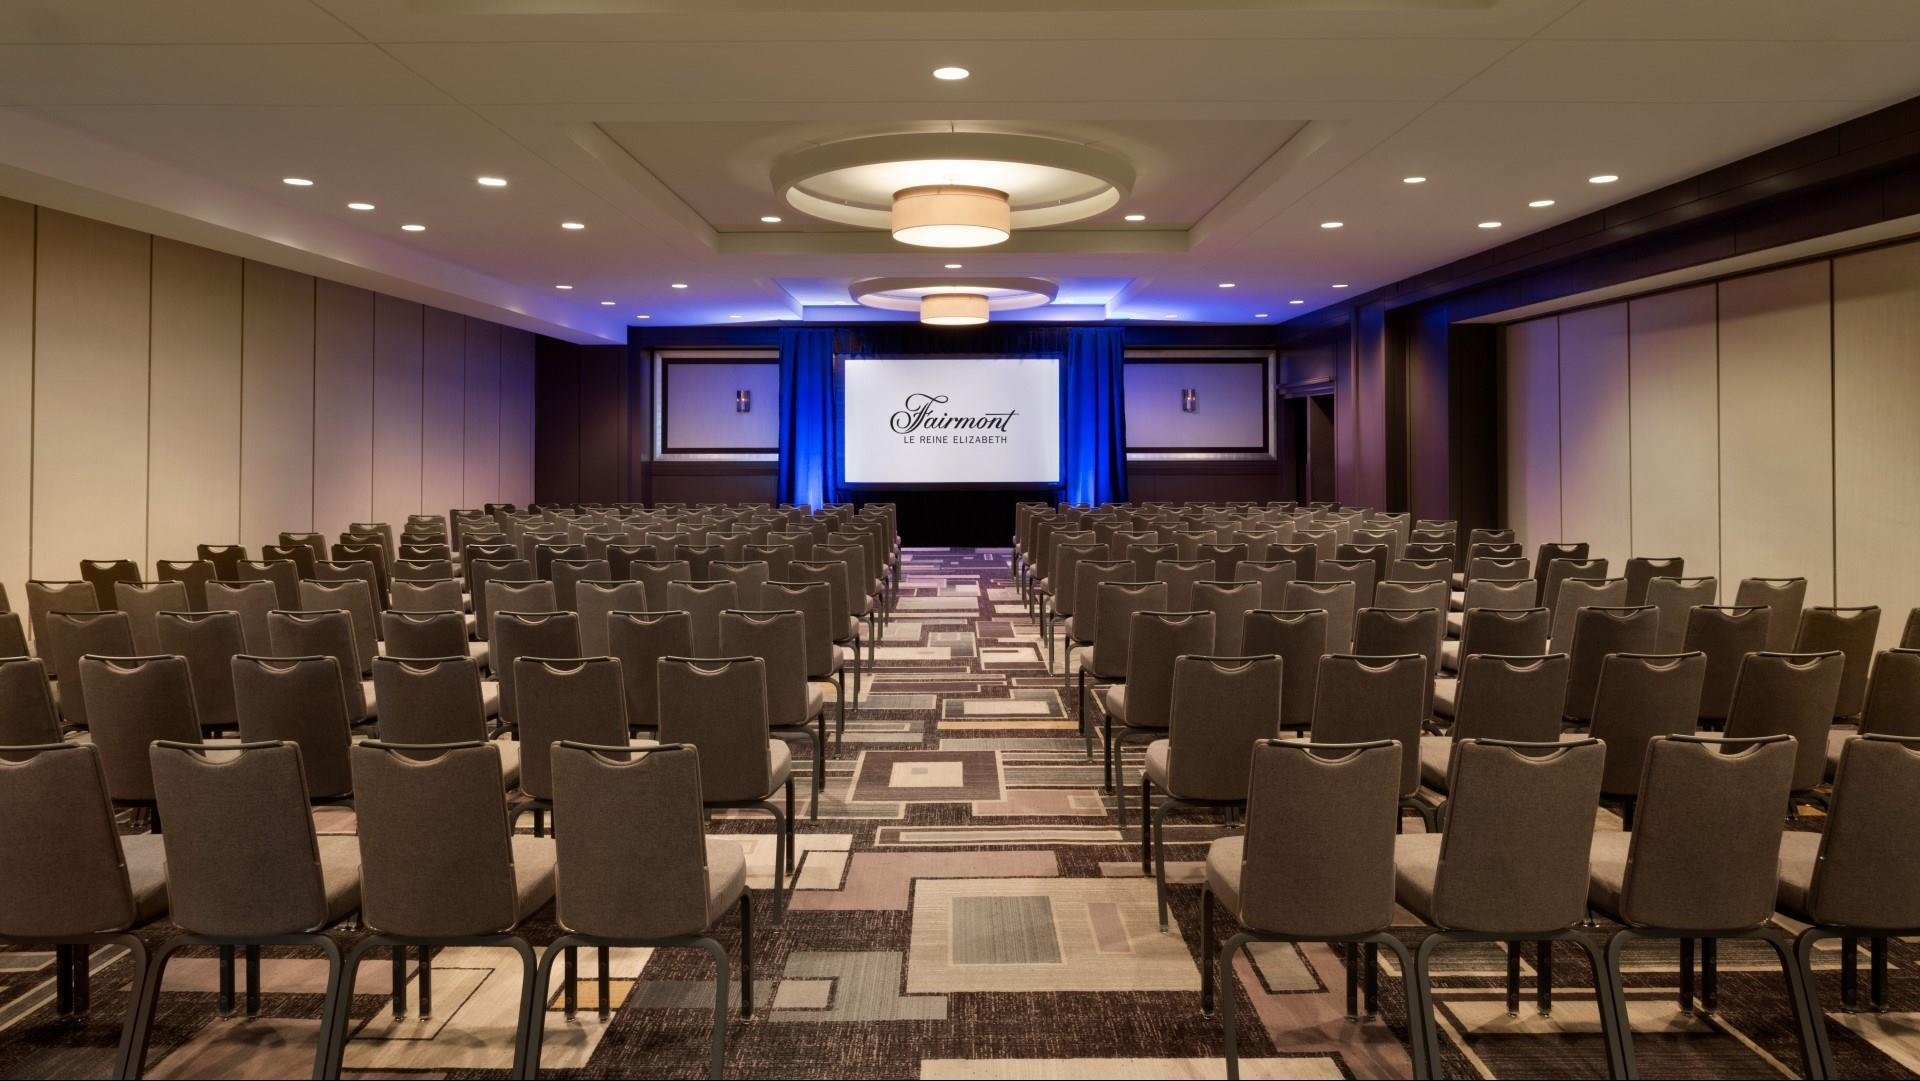 Meetings And Events At Fairmont The Queen Elizabeth Montreal Qc Ca